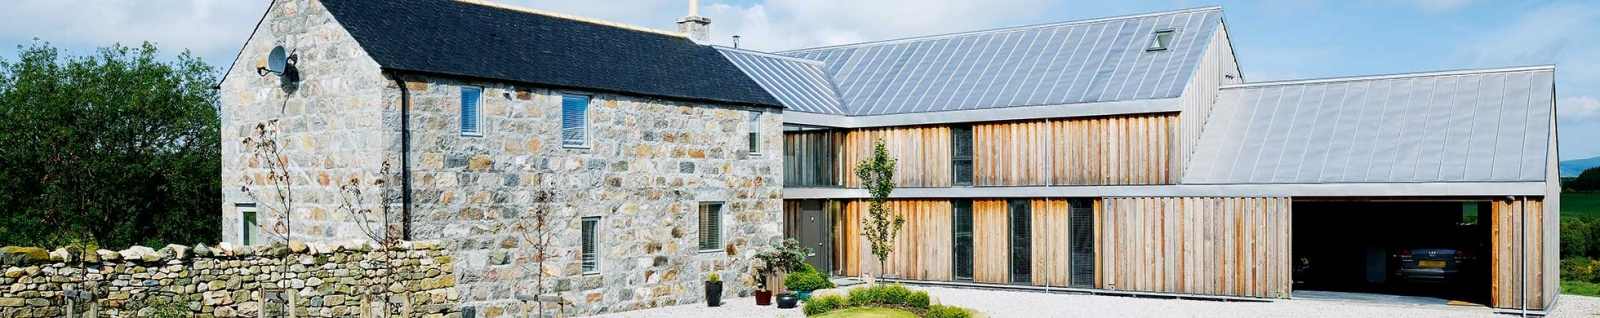 stone farmhouse with timber clad extension